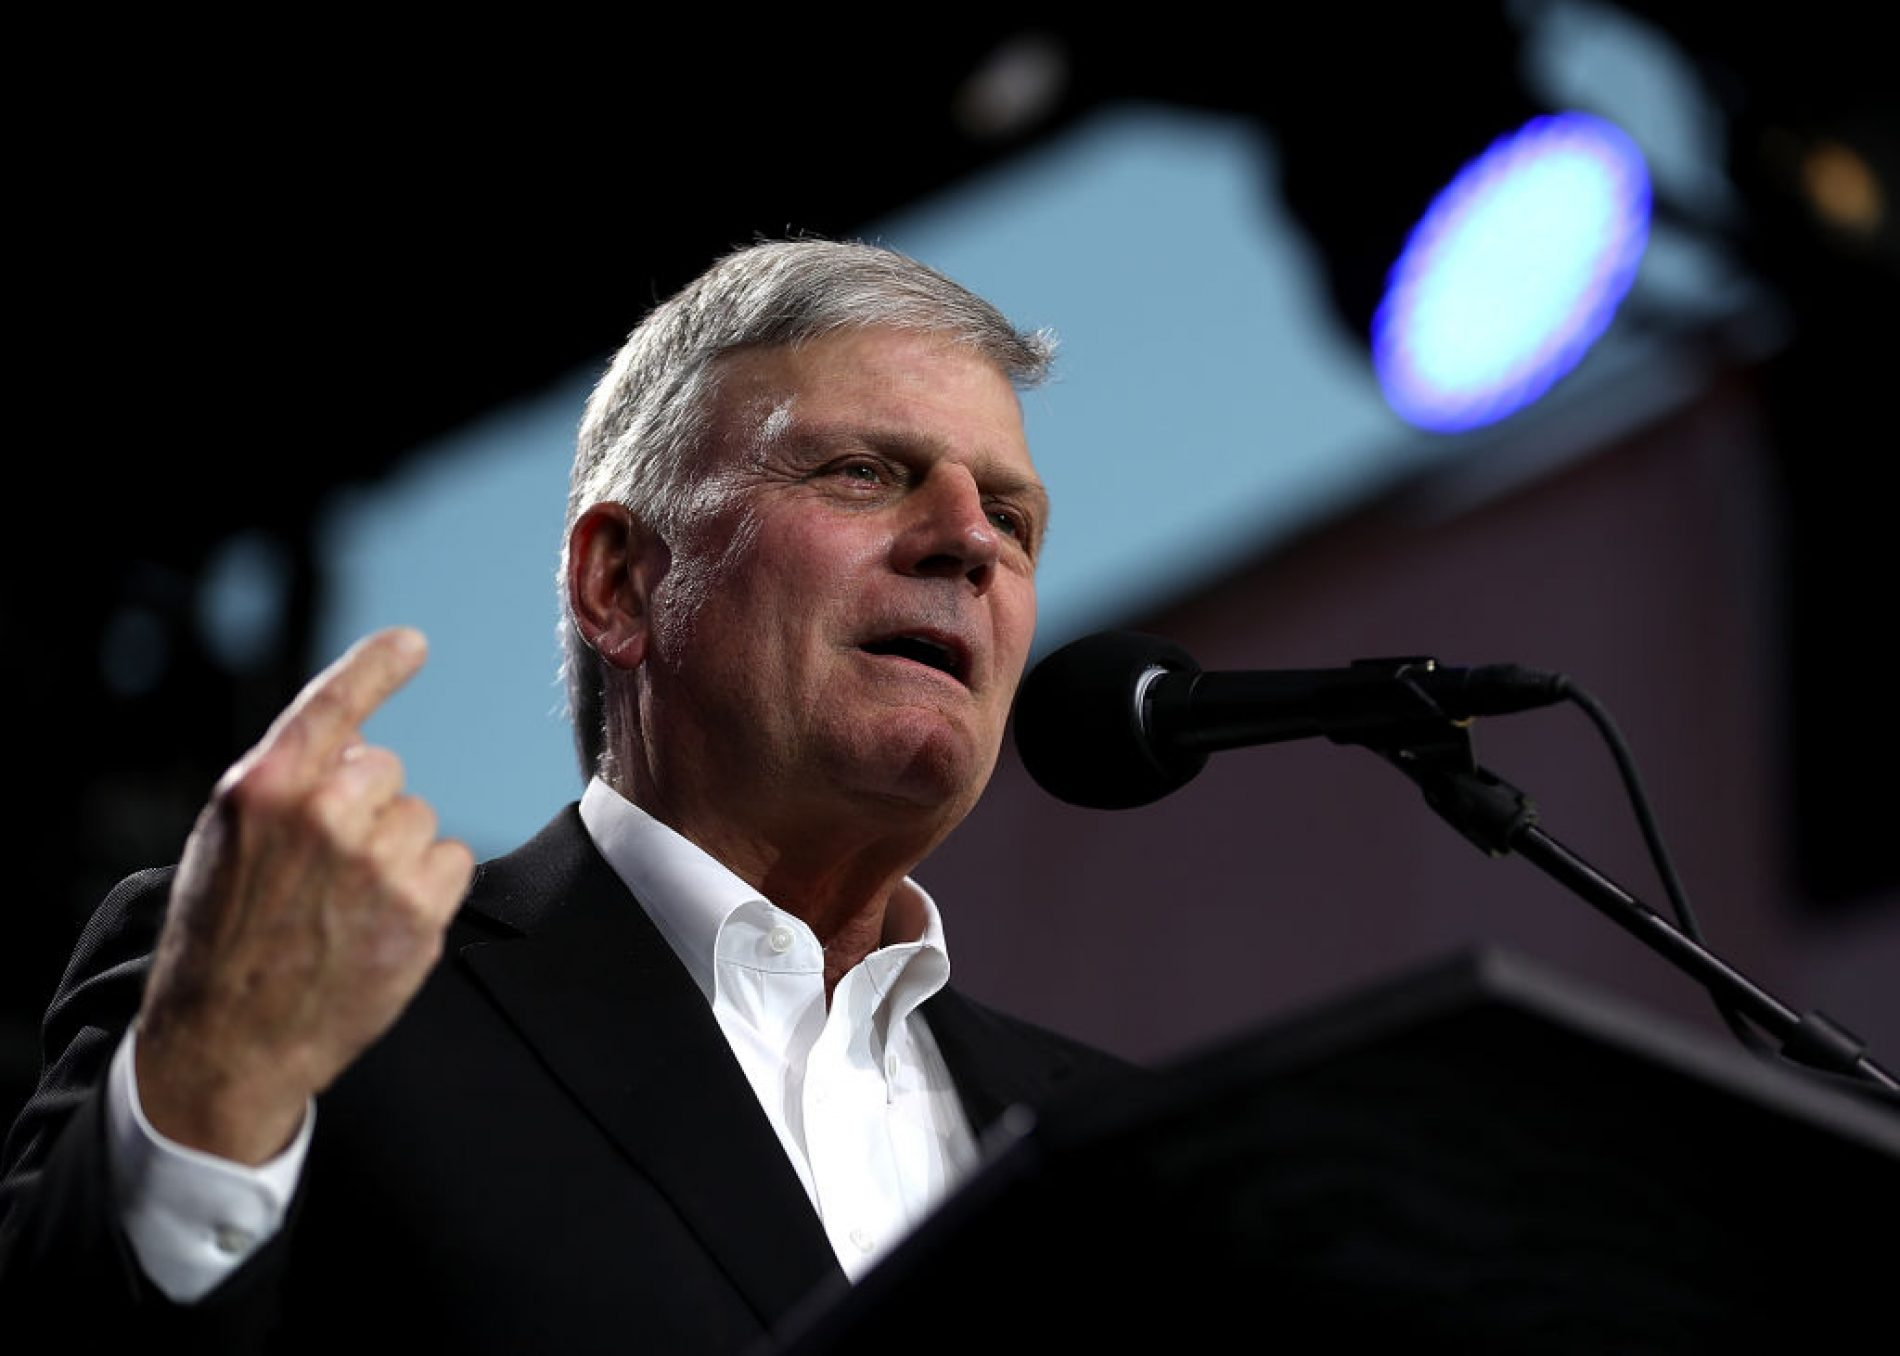 """Hate preacher Franklin Graham says he's not homophobic but that LGBTQ people are """"truthophobic"""""""